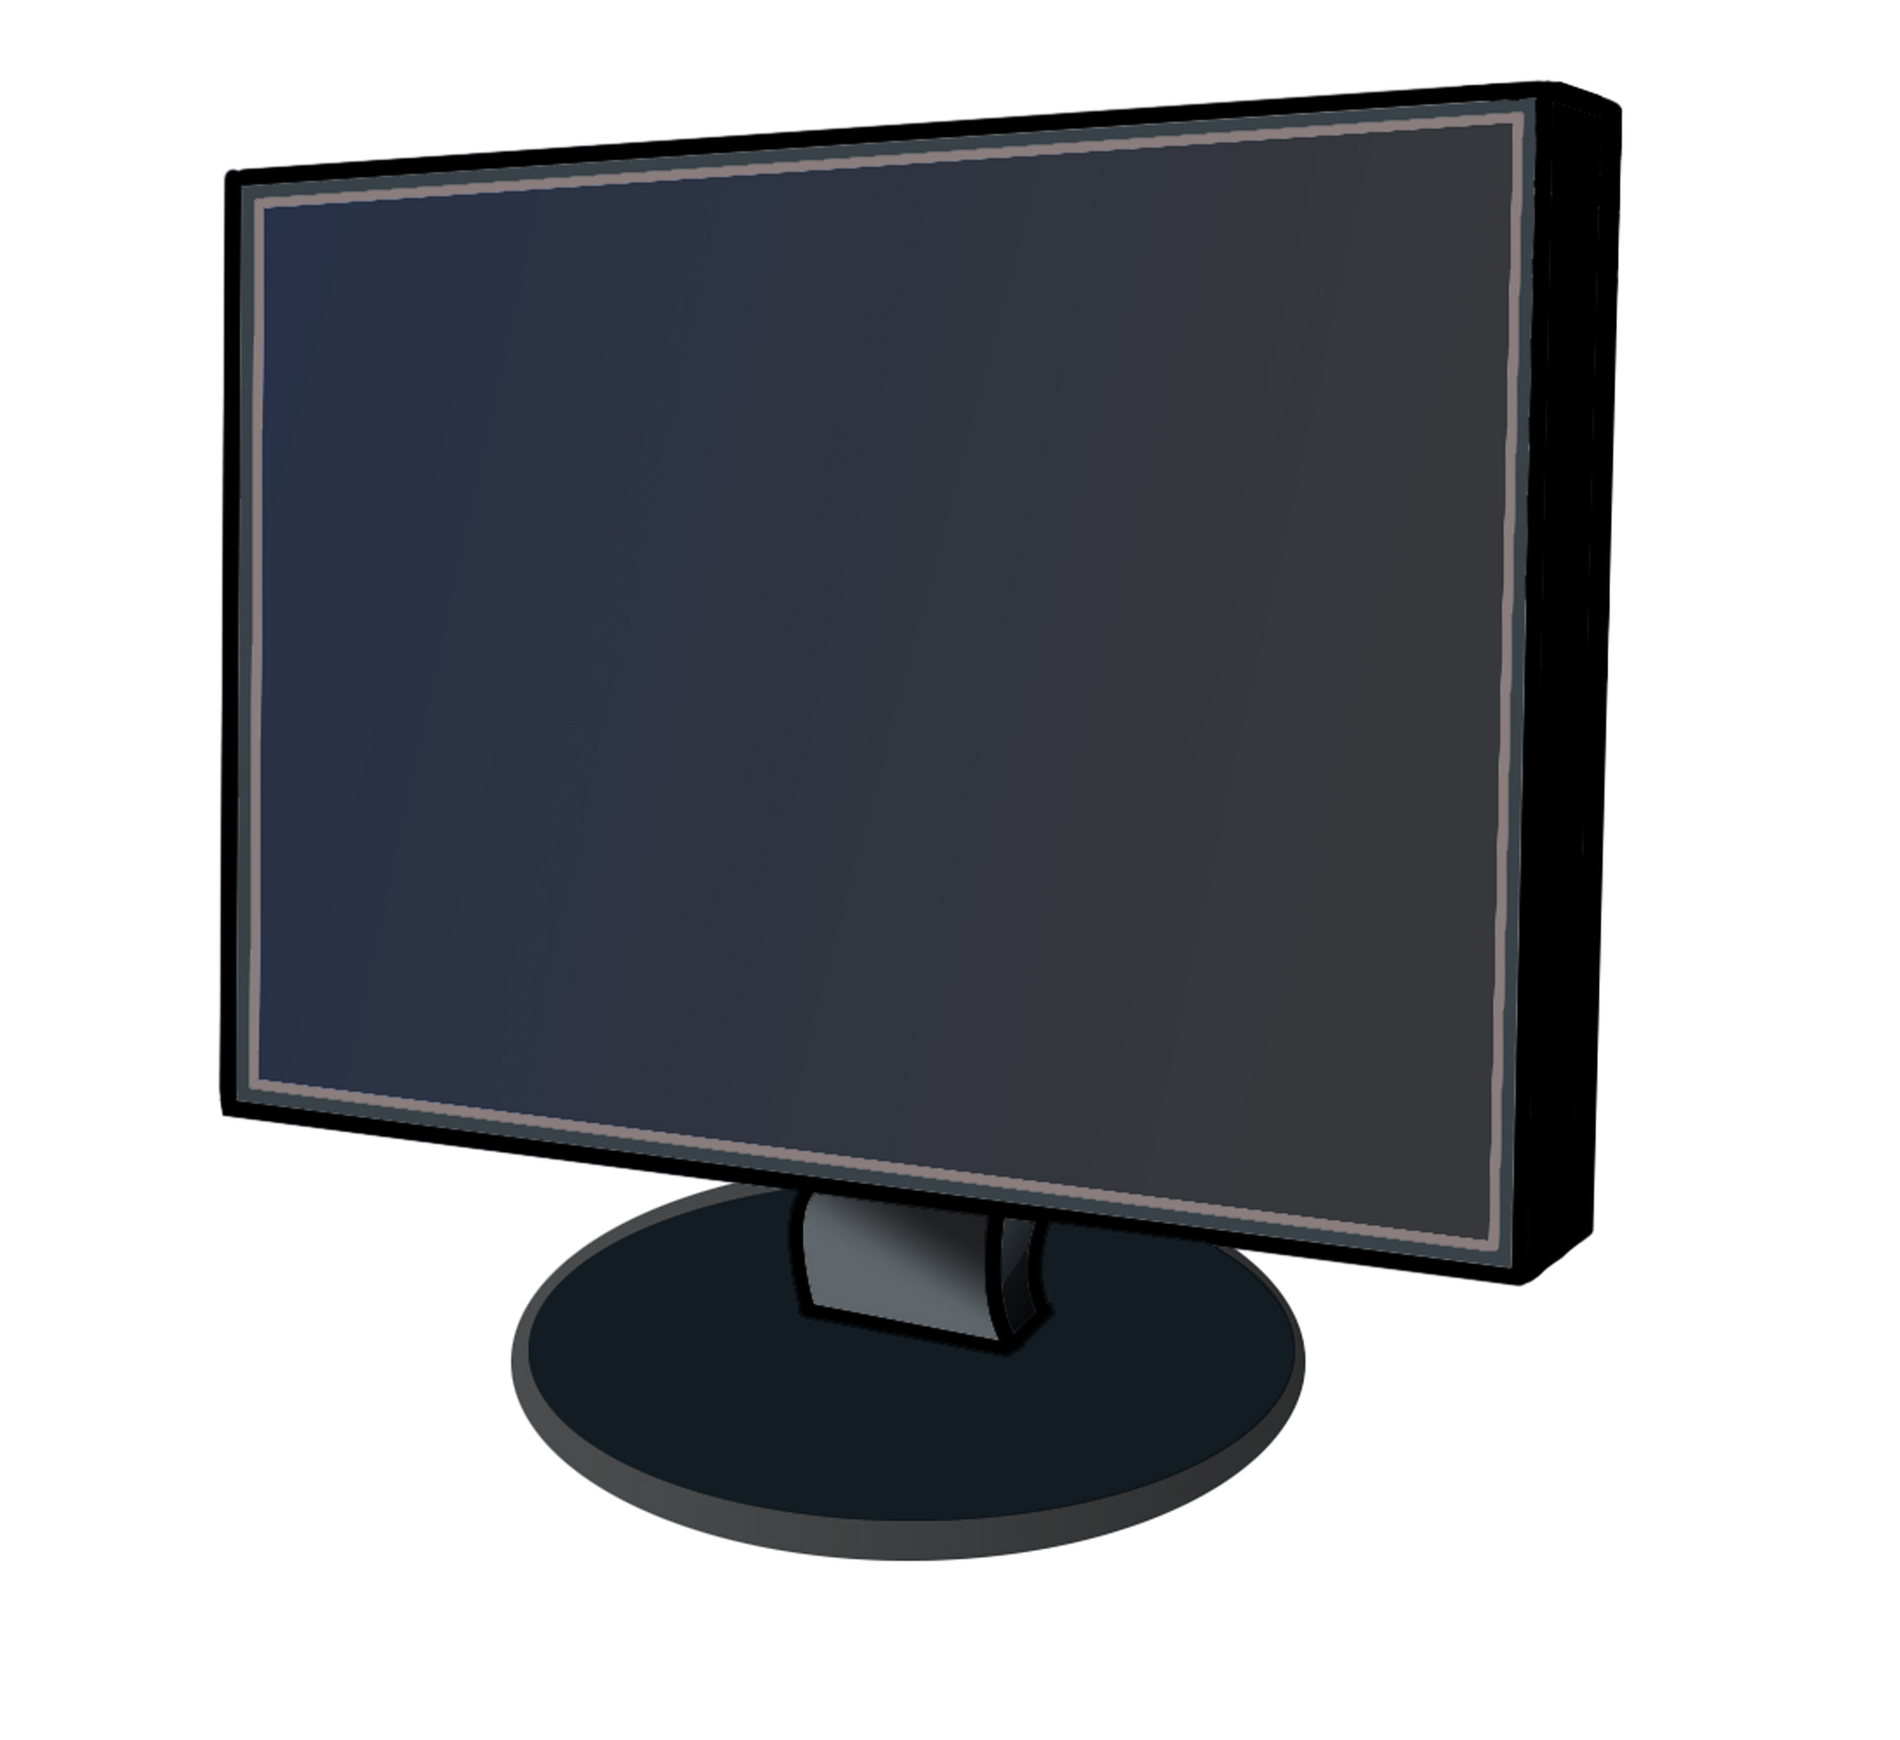 Computer Monitor Clipart.